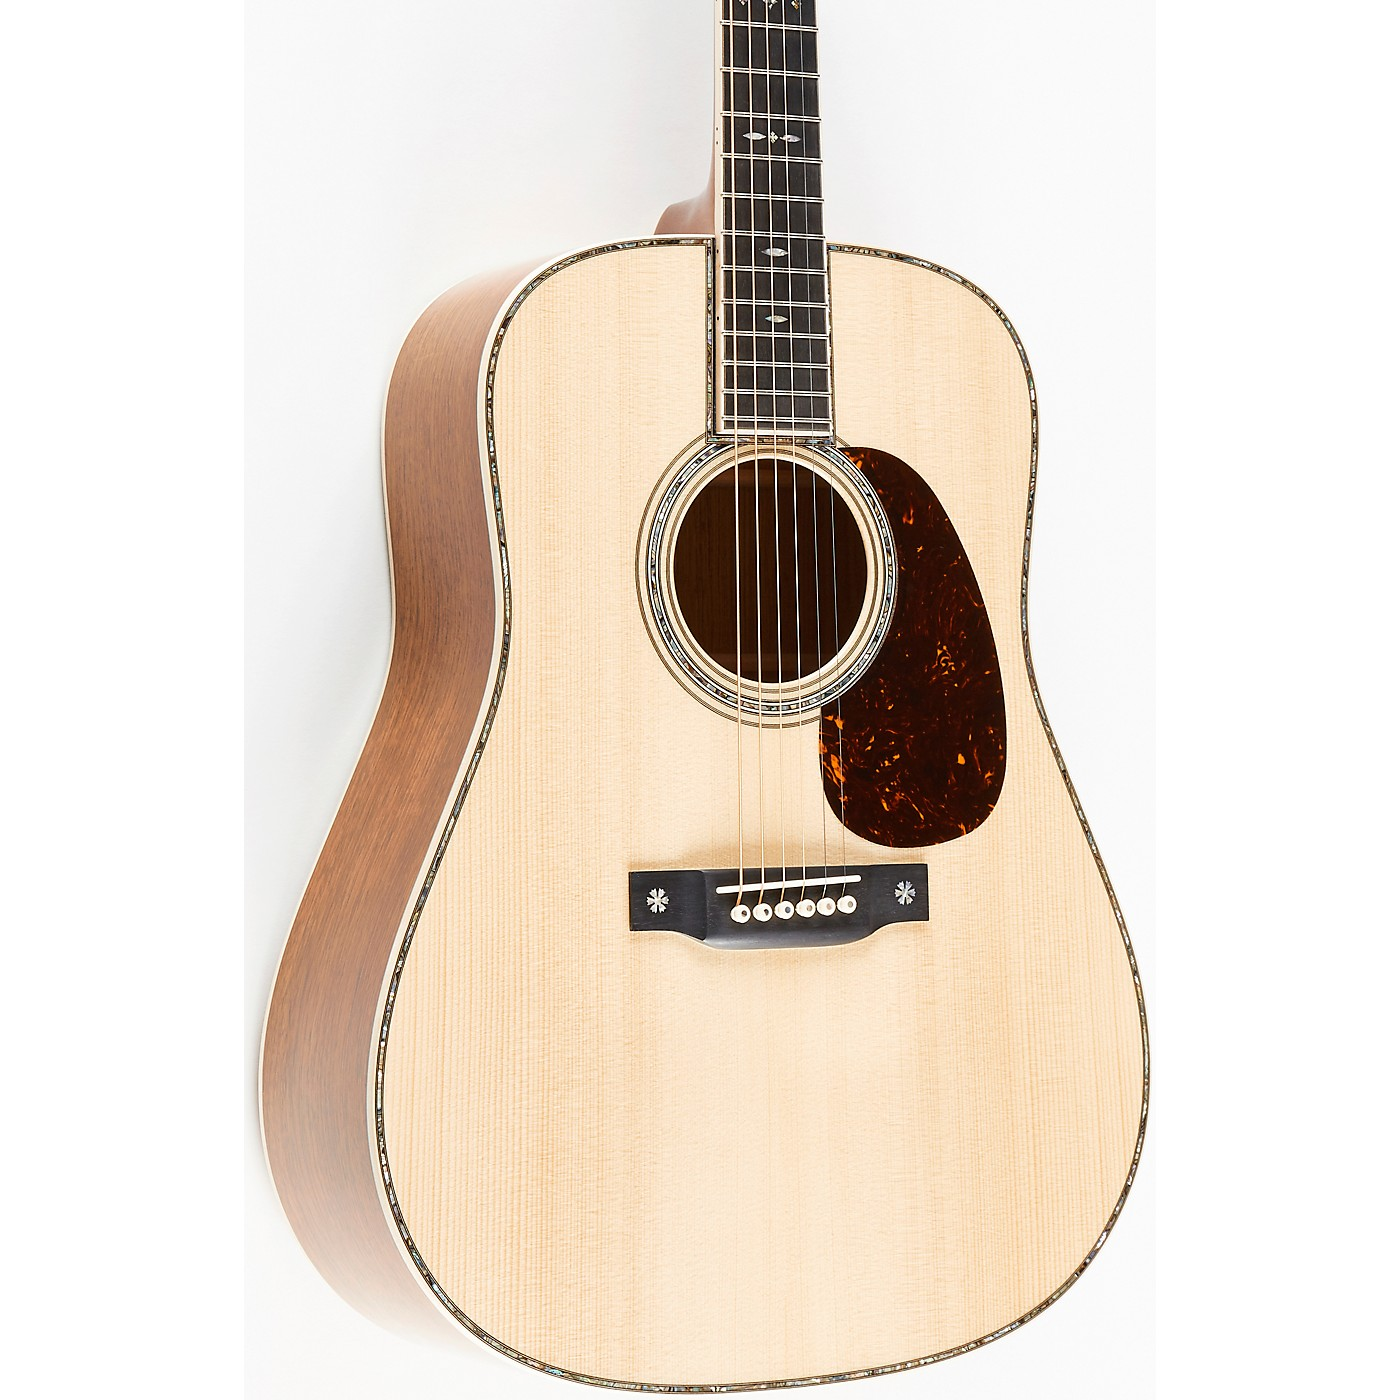 Martin Custom Shop Guatemalan Rosewood Dreadnought Acoustic Guitar thumbnail